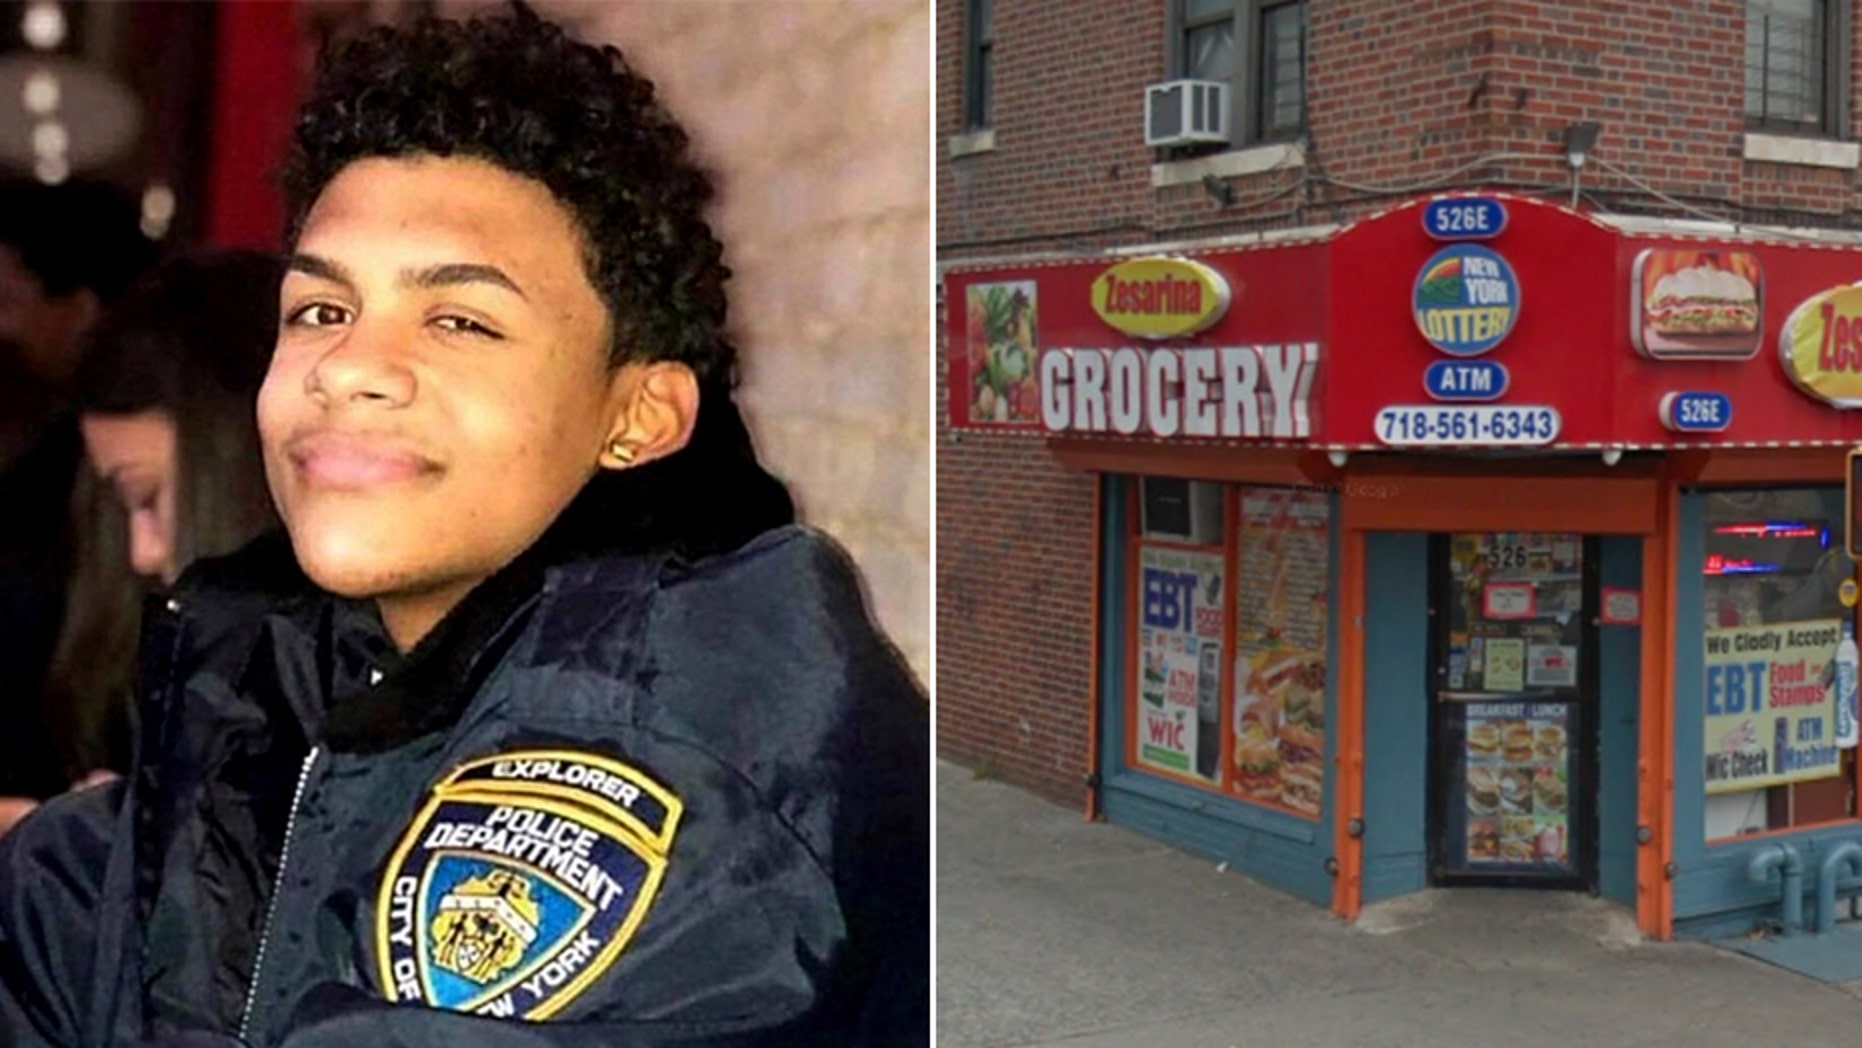 Lesandro Guzman-Feliz, 15, was stabbed outside the Zesarina Grocery store in New York City last week.